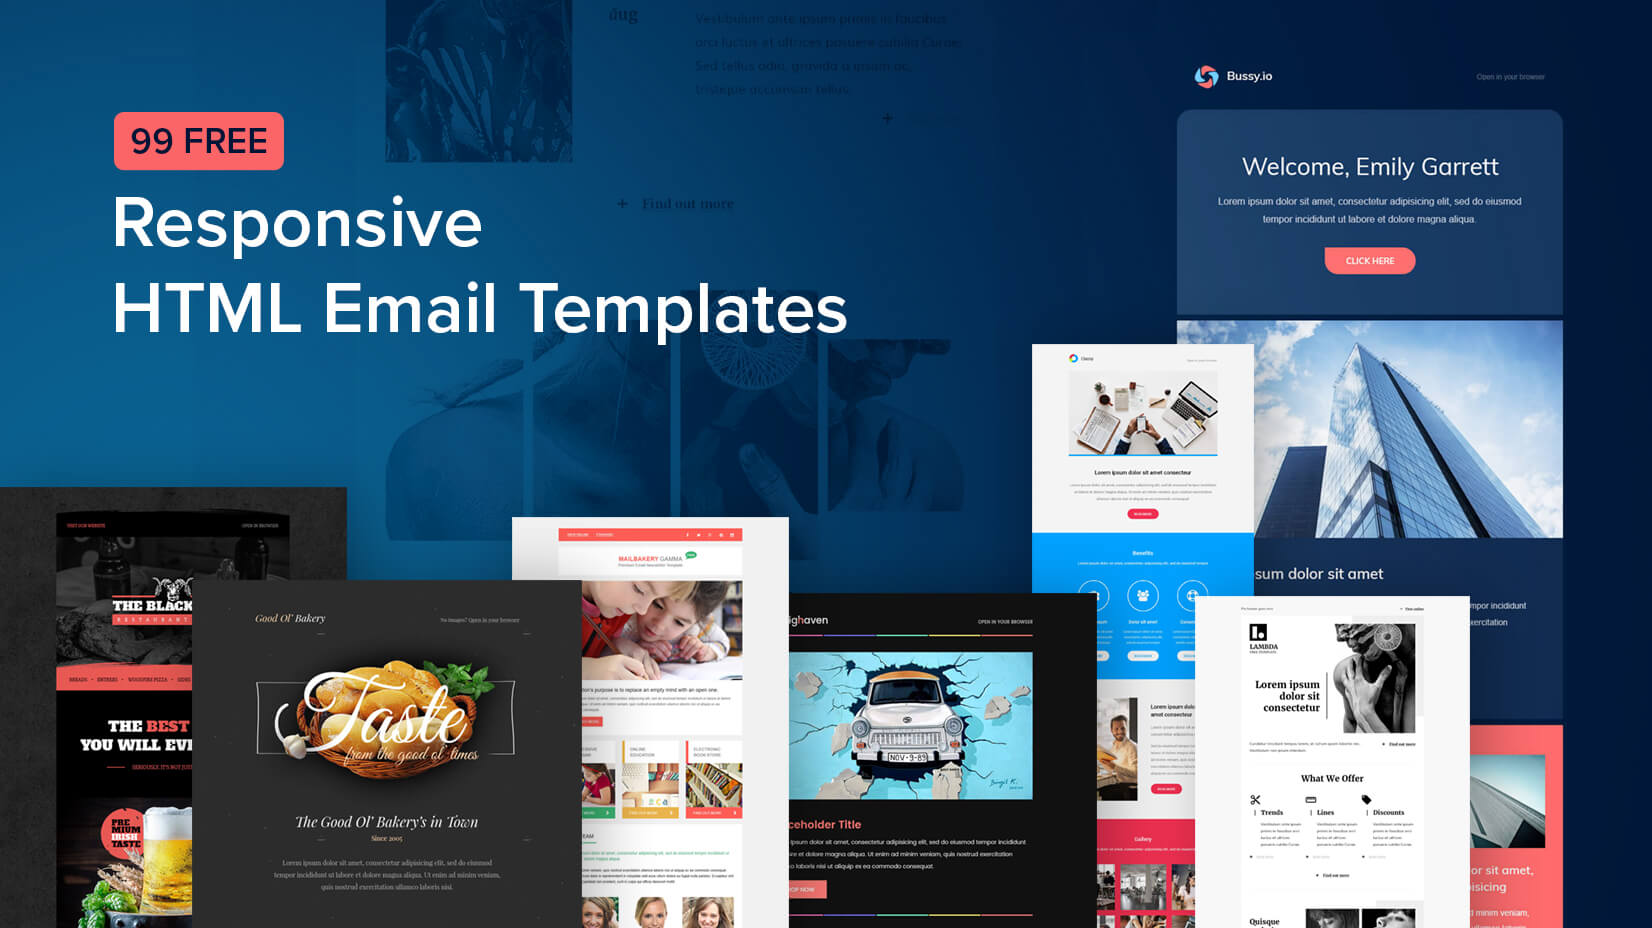 30 free responsive email and newsletter templates.